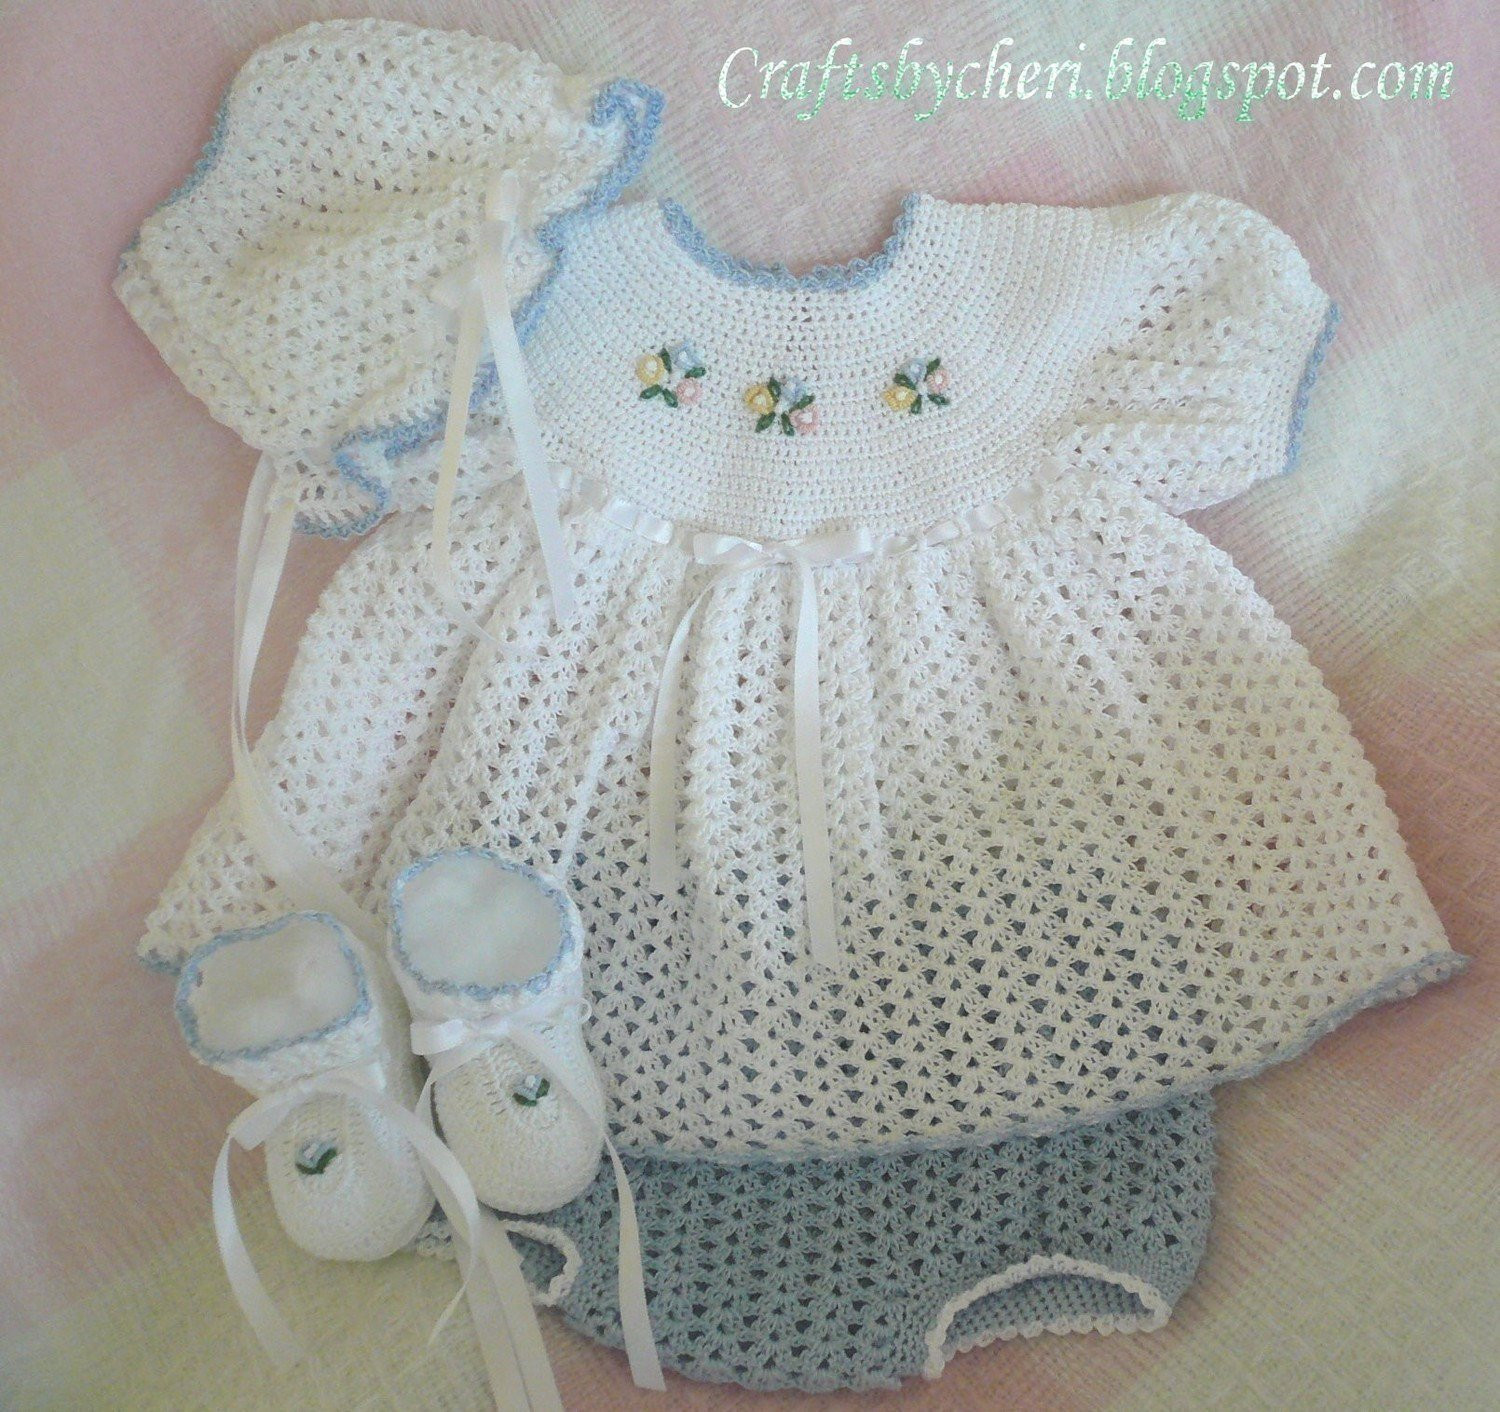 Crochet Baby Dress Patterns Fresh Cheri Crochet original Baby Pattern Newborn Size Dress Of Awesome 42 Models Crochet Baby Dress Patterns